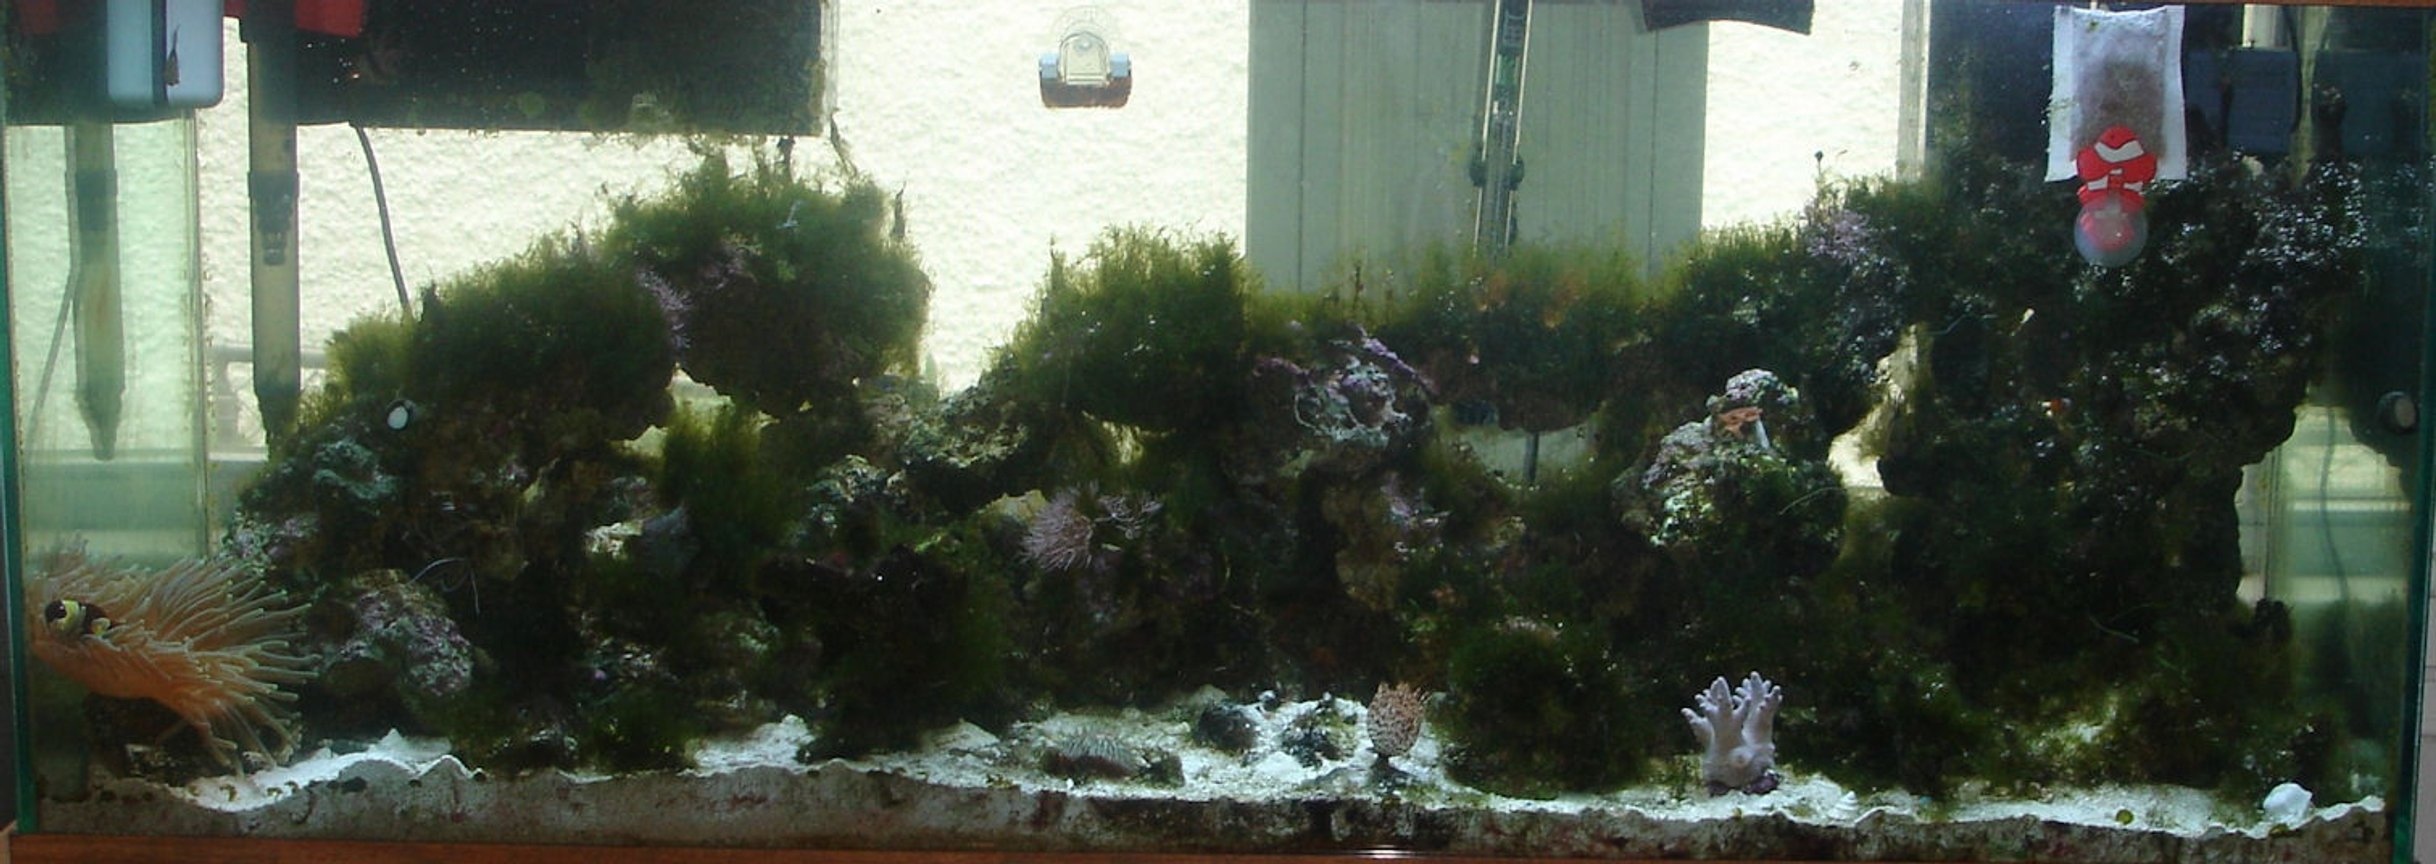 52 gallons reef tank (mostly live coral and fish) - 75 gallon with t5 lights, bakpak 2rv protein skimmer, 1 chocolate tang, 1 maroon clown hosting a green bubble tipped anemone, 2 true percula clowns, 1 lawnmower blenny, 1 hawaiian feather duster, polyps, leather coral, 1 yellow tailed damsel, 1 coral banded shrimp,3 pajama cardinals. This tank has 100 lbs of live sand and 80 lbs of live rock with many different types of snails and hermit crabs.